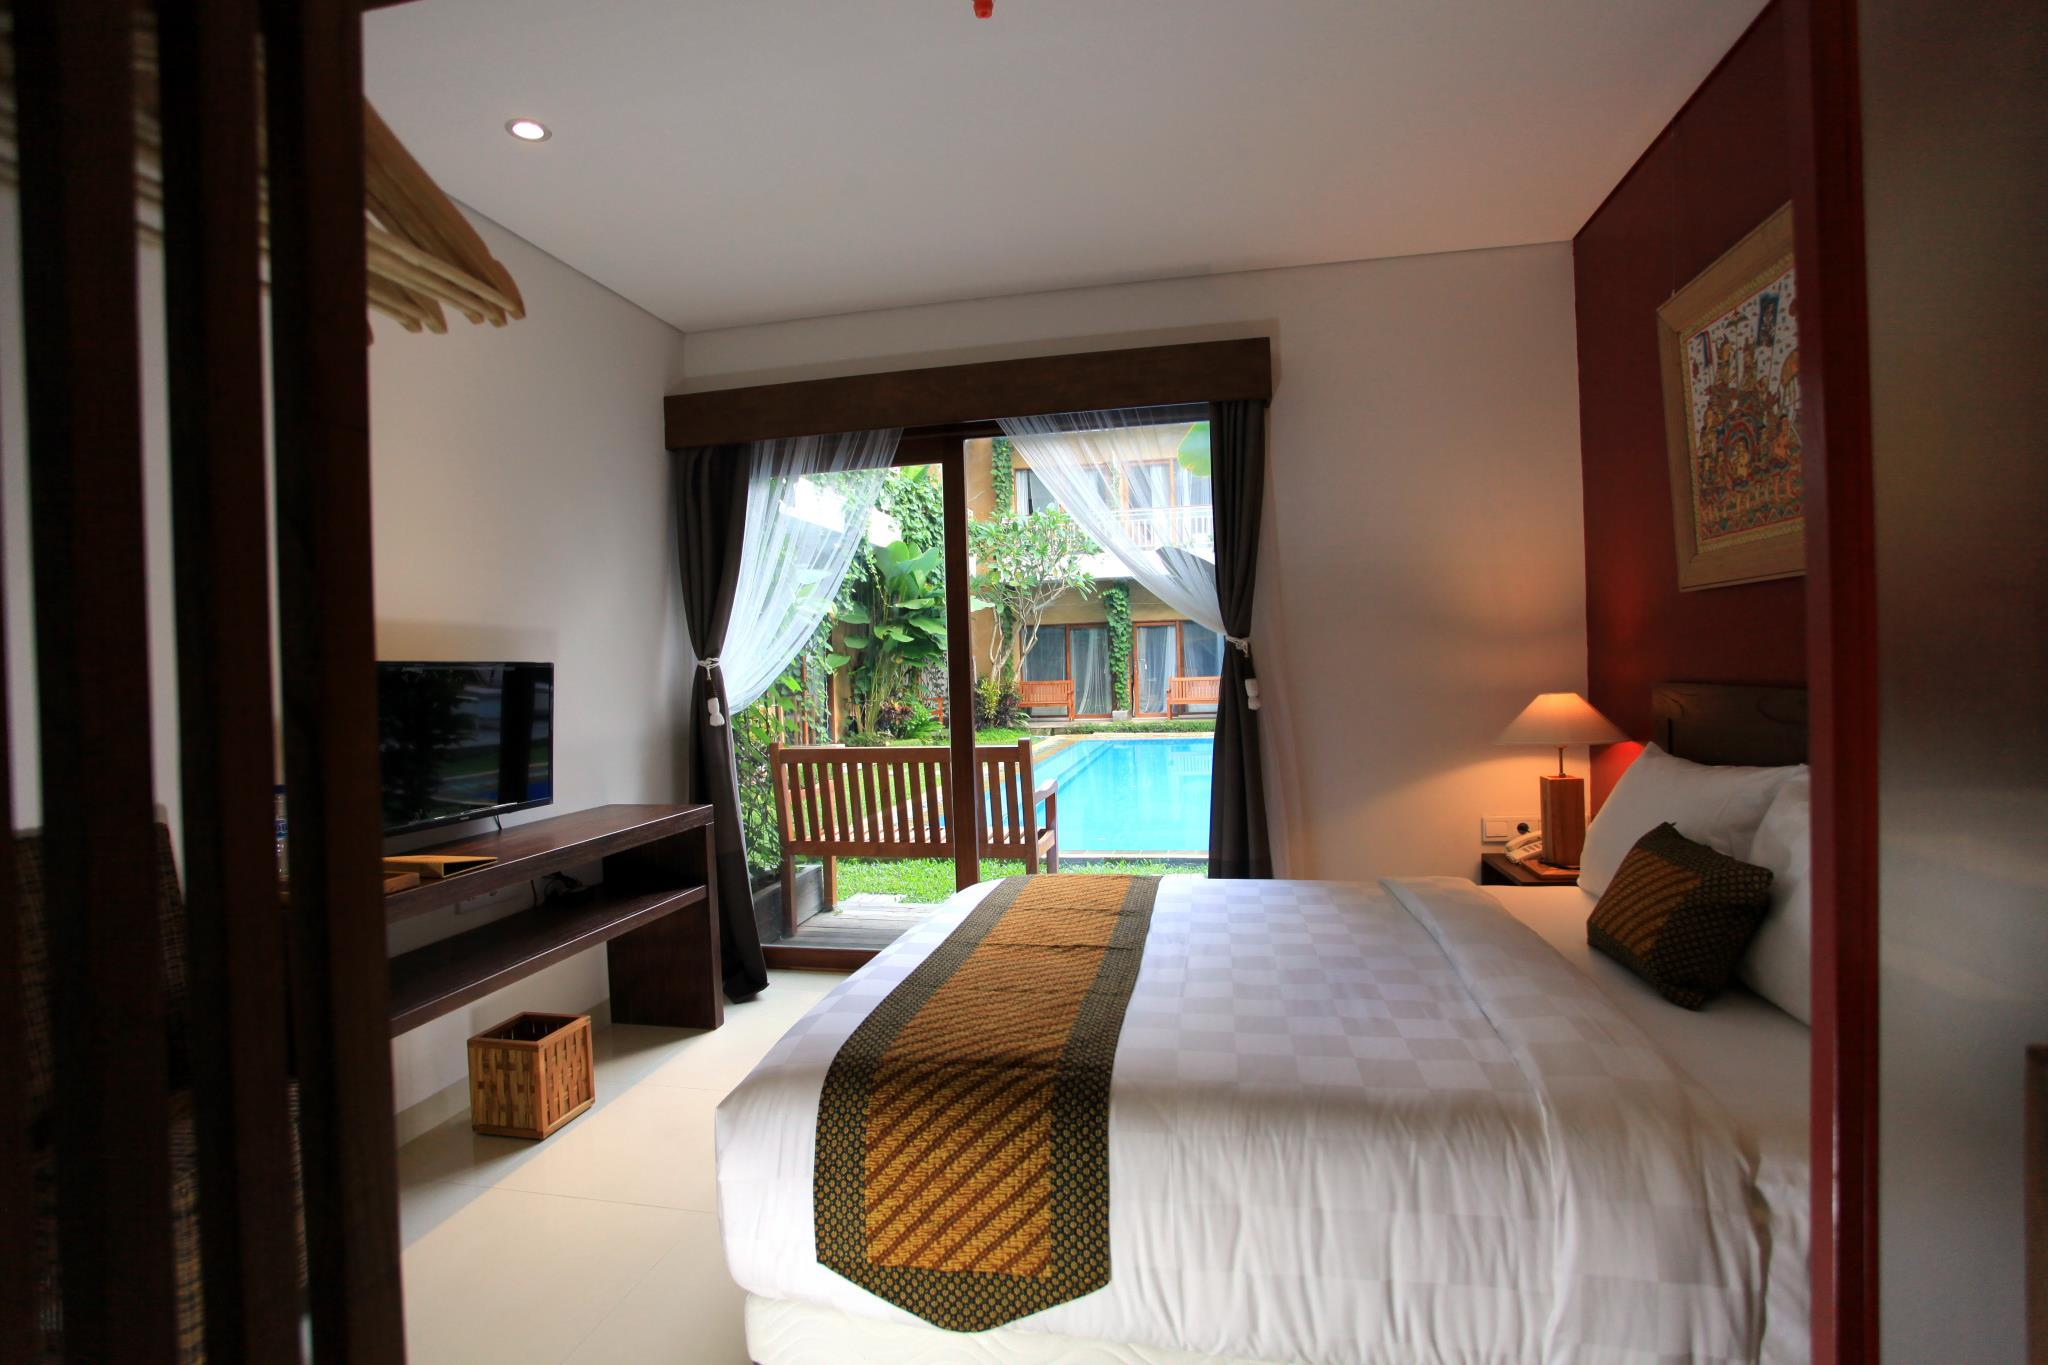 Hotel Puriartha Ubud ホテル詳細